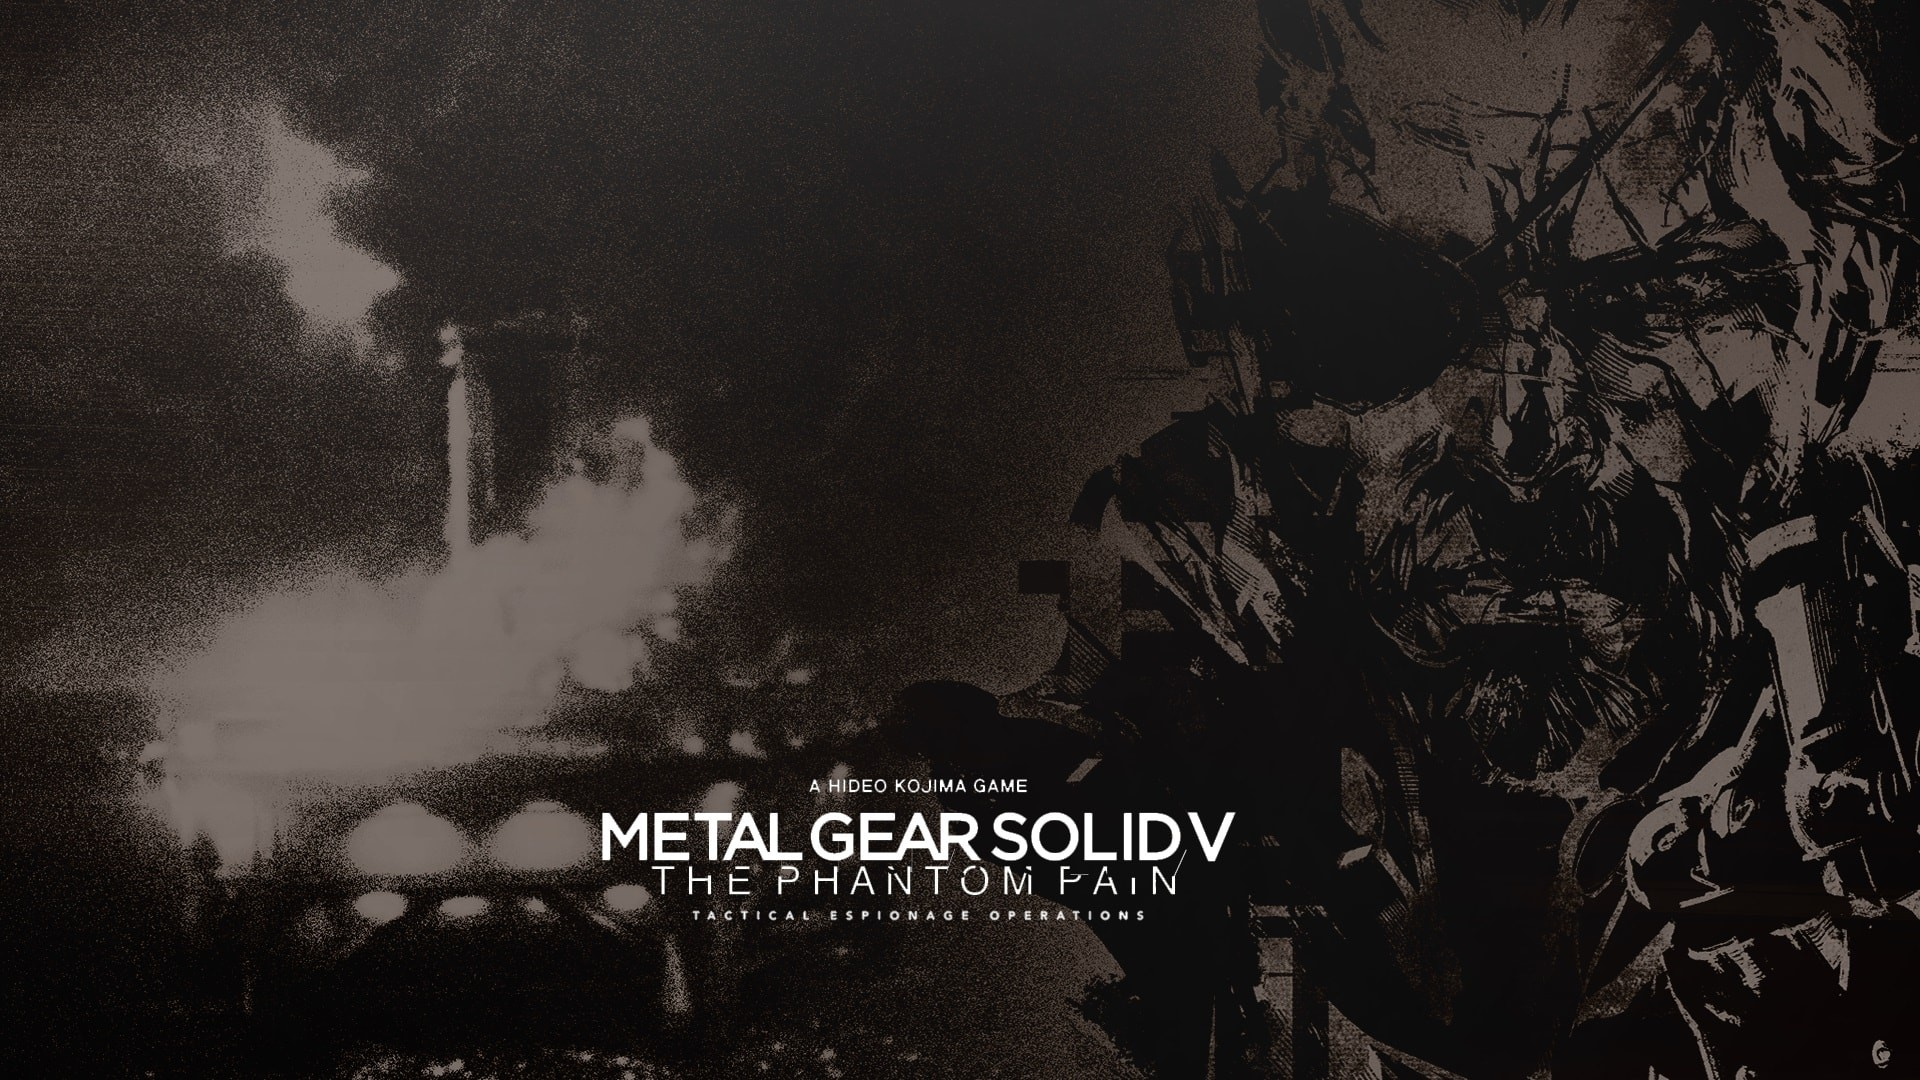 1920x1080 Metal Gear Solid V: The Phantom Pain HD Wallpapers